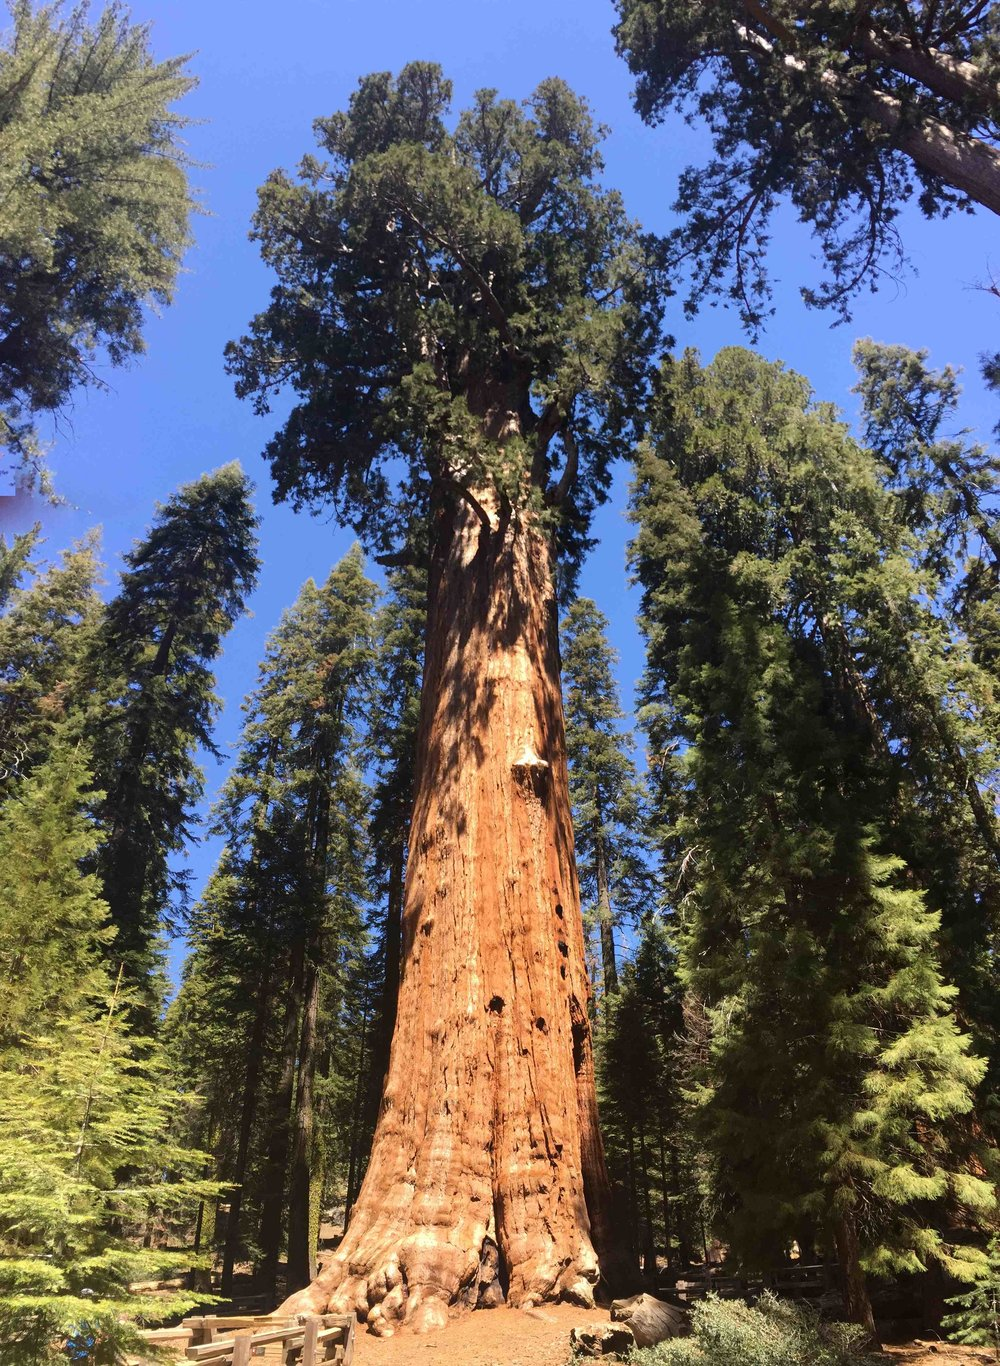 The venerable General Sherman -- the largest tree on Earth.